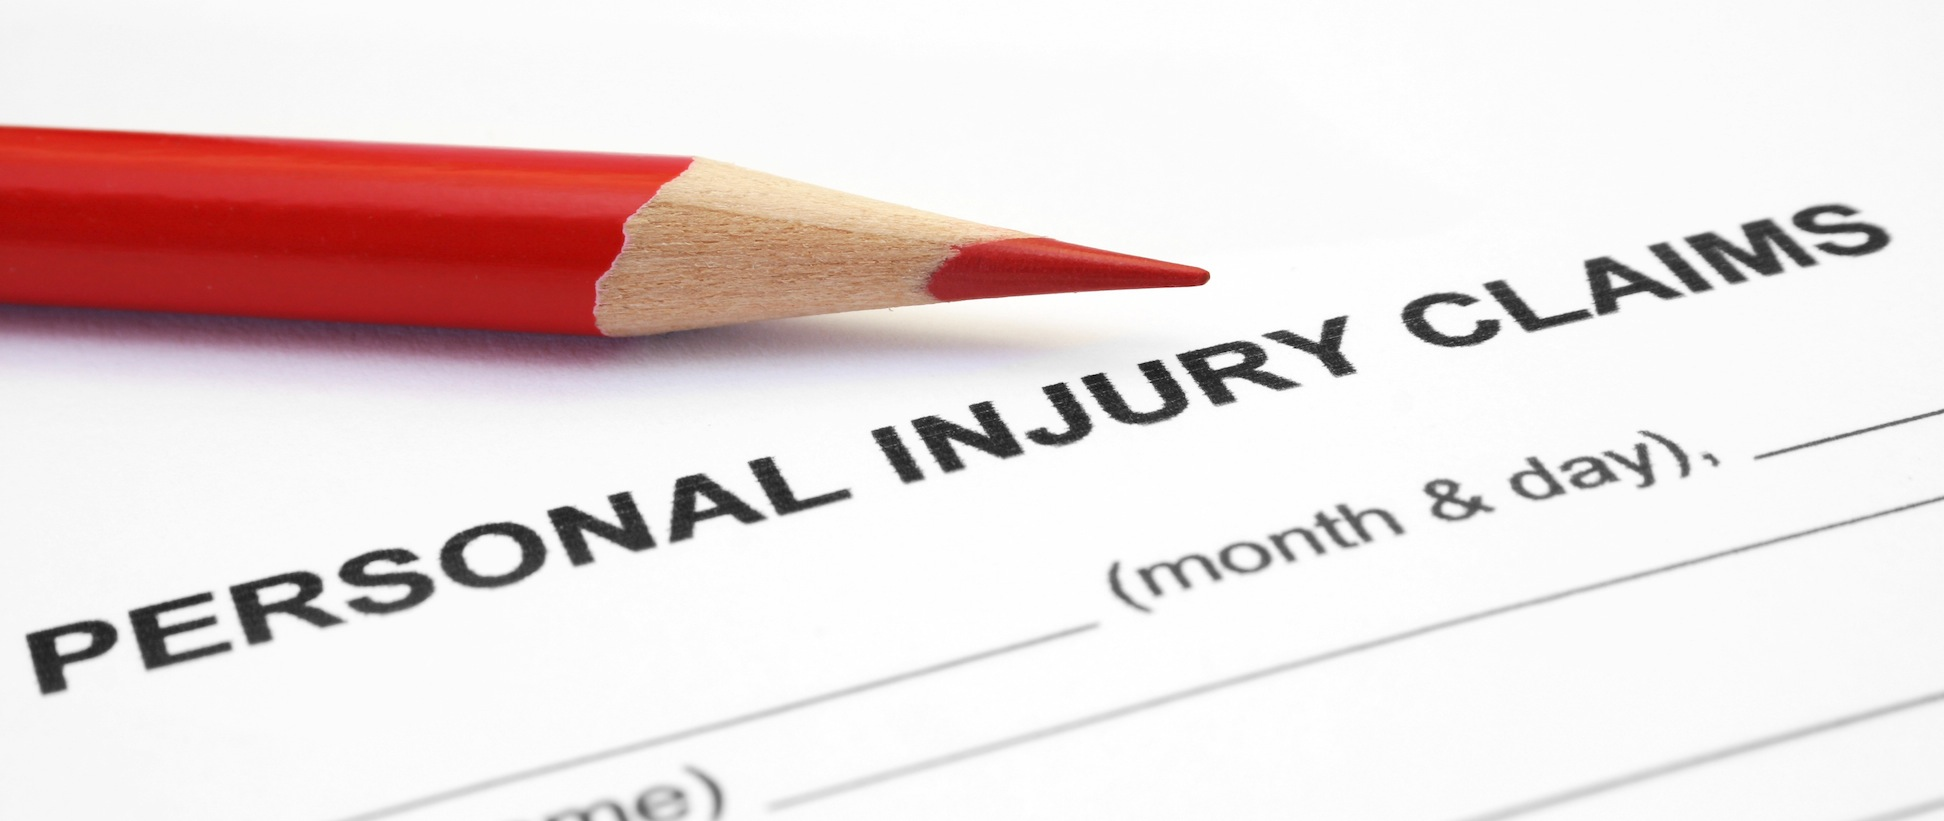 Construction Accidents Preventing a Preventable Death